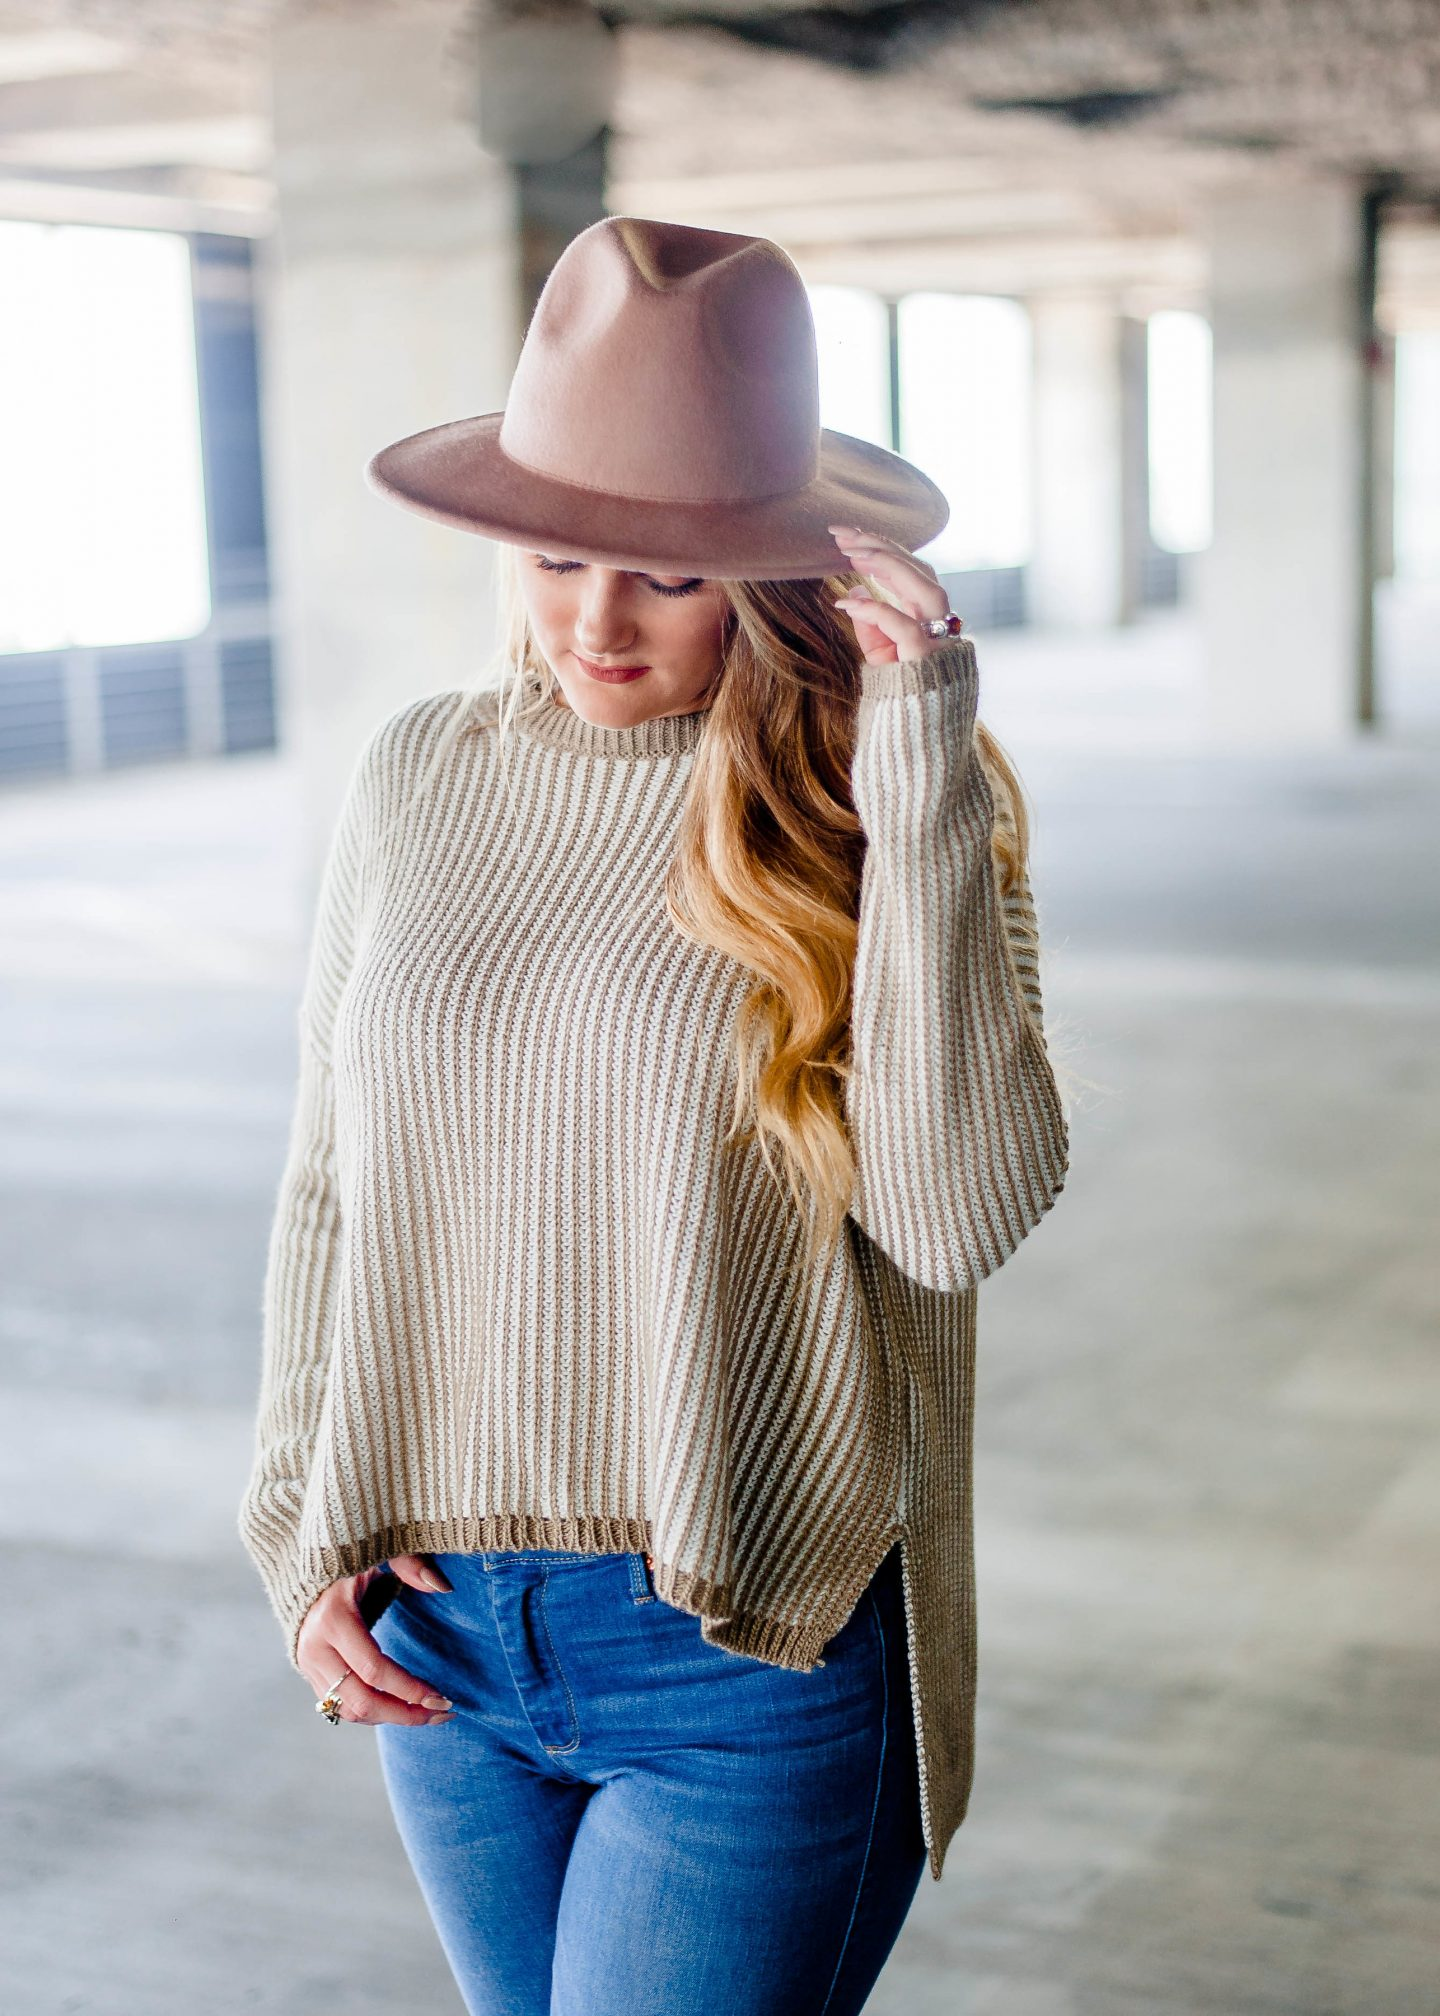 Fall Outfit Must-Haves